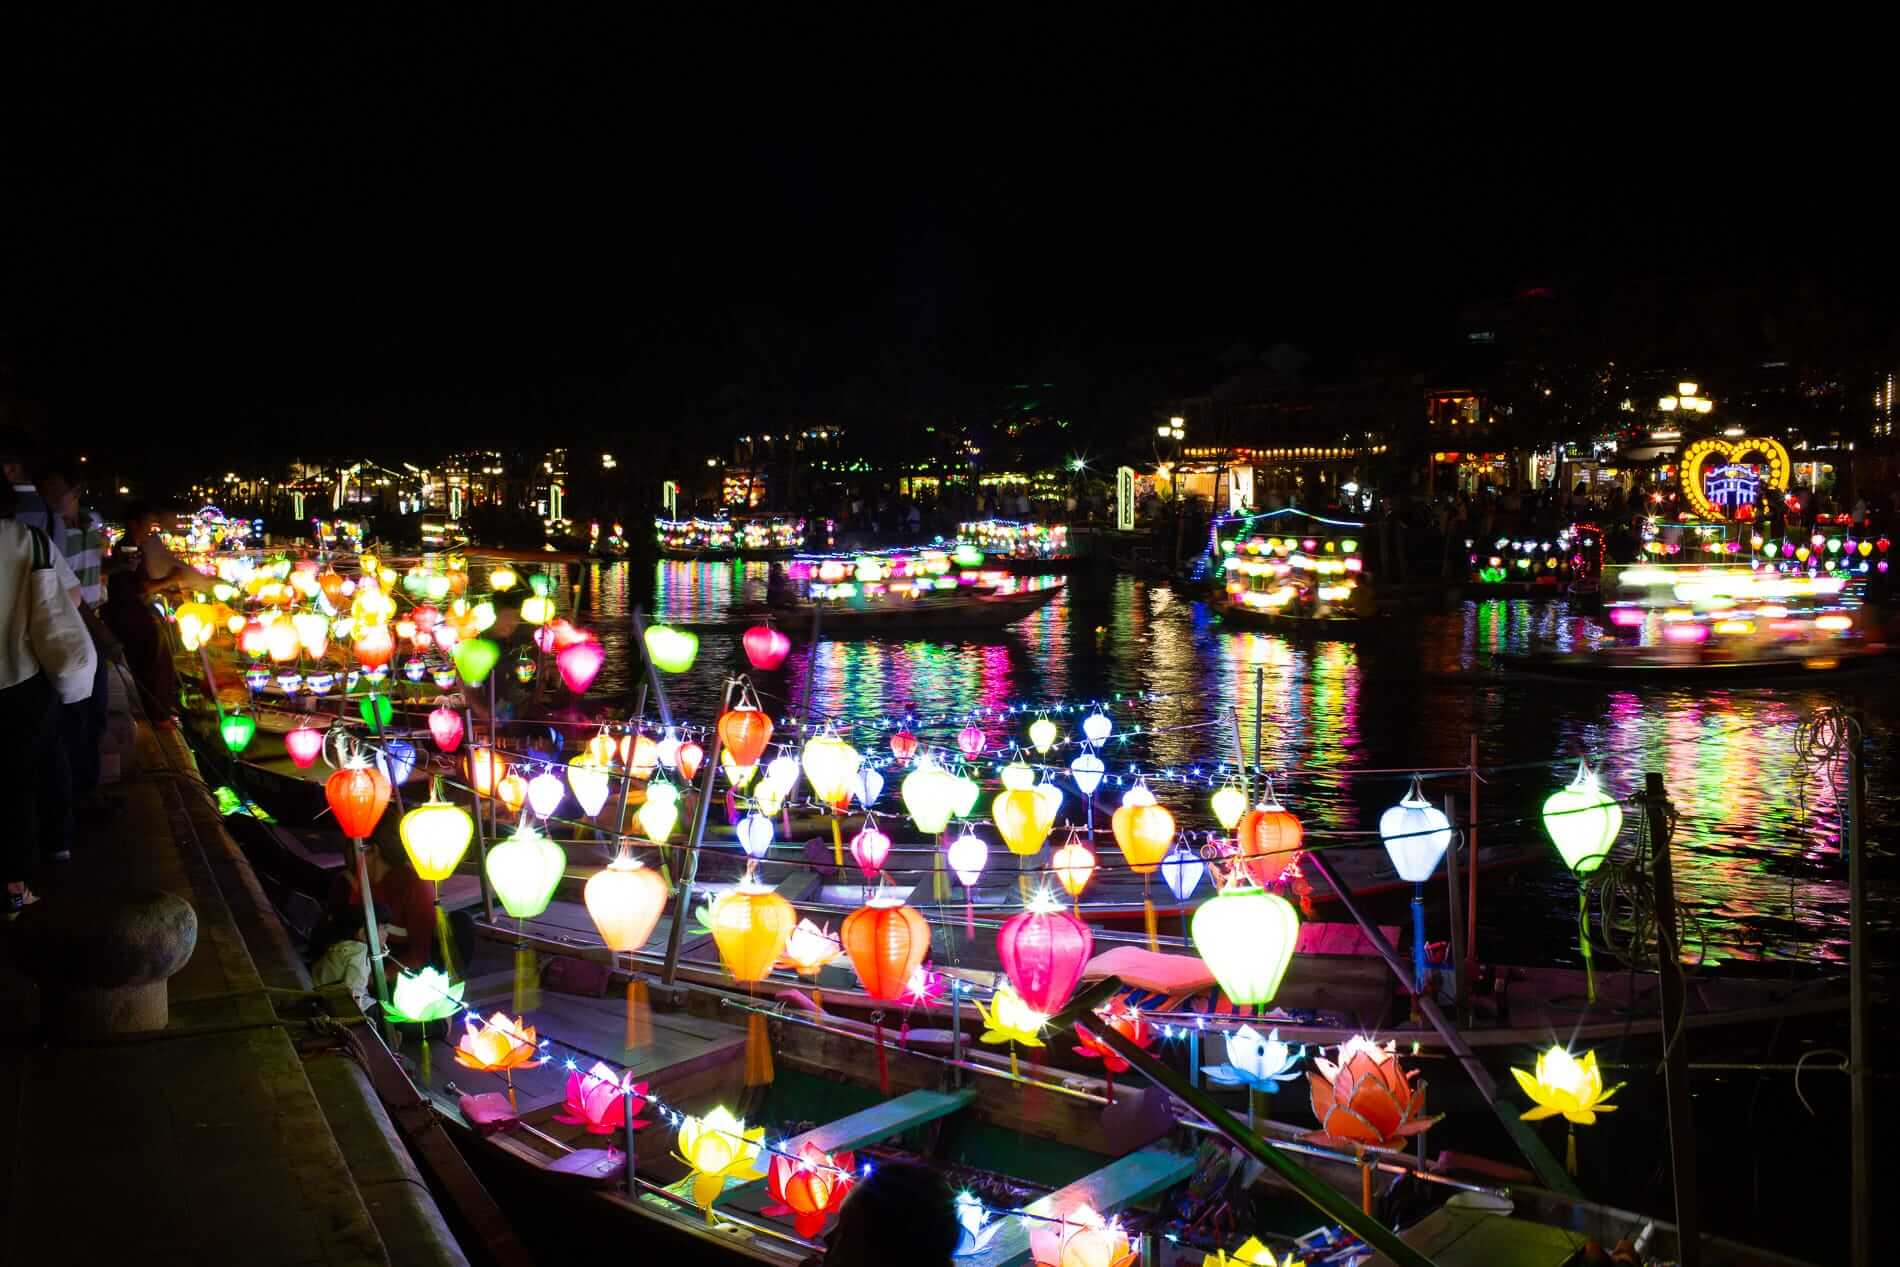 Lantern boats light up the river